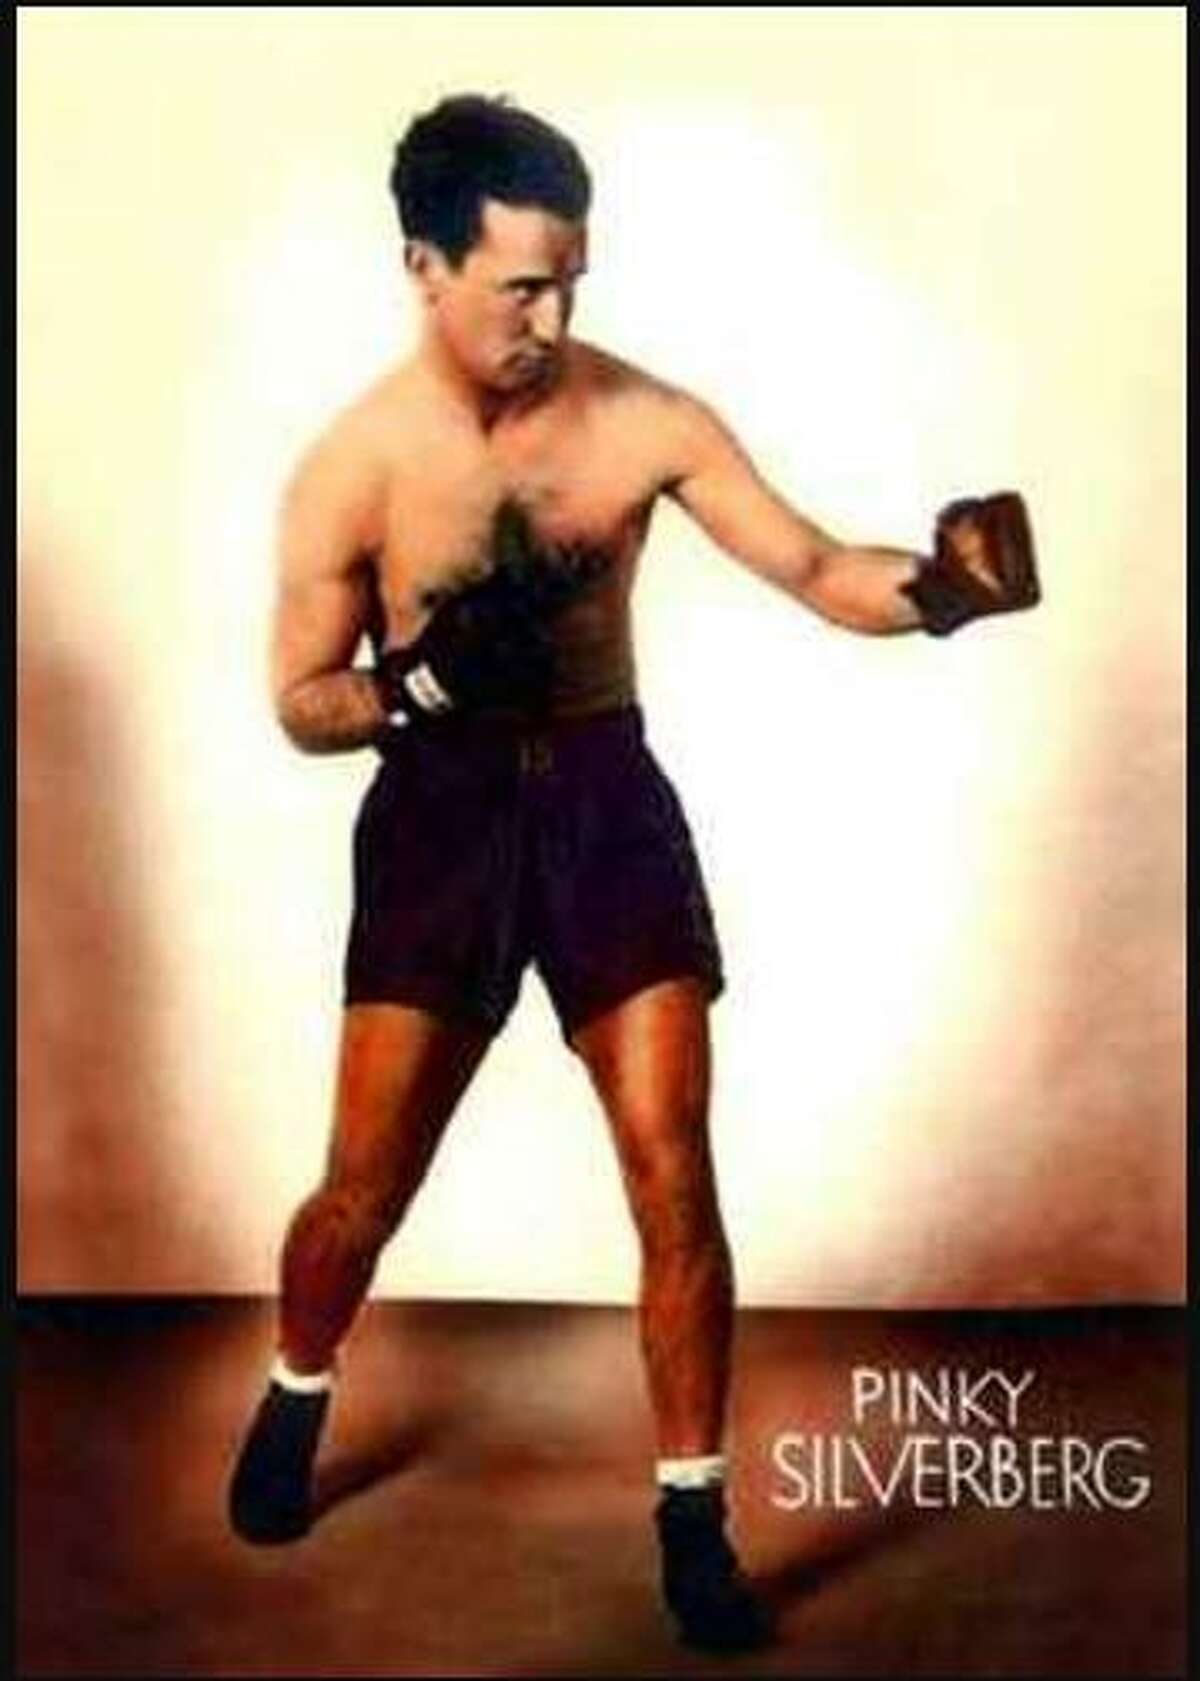 Pinky Silverberg, a champion boxer and Ansonia native in won the Flyweight Championship in 1927.